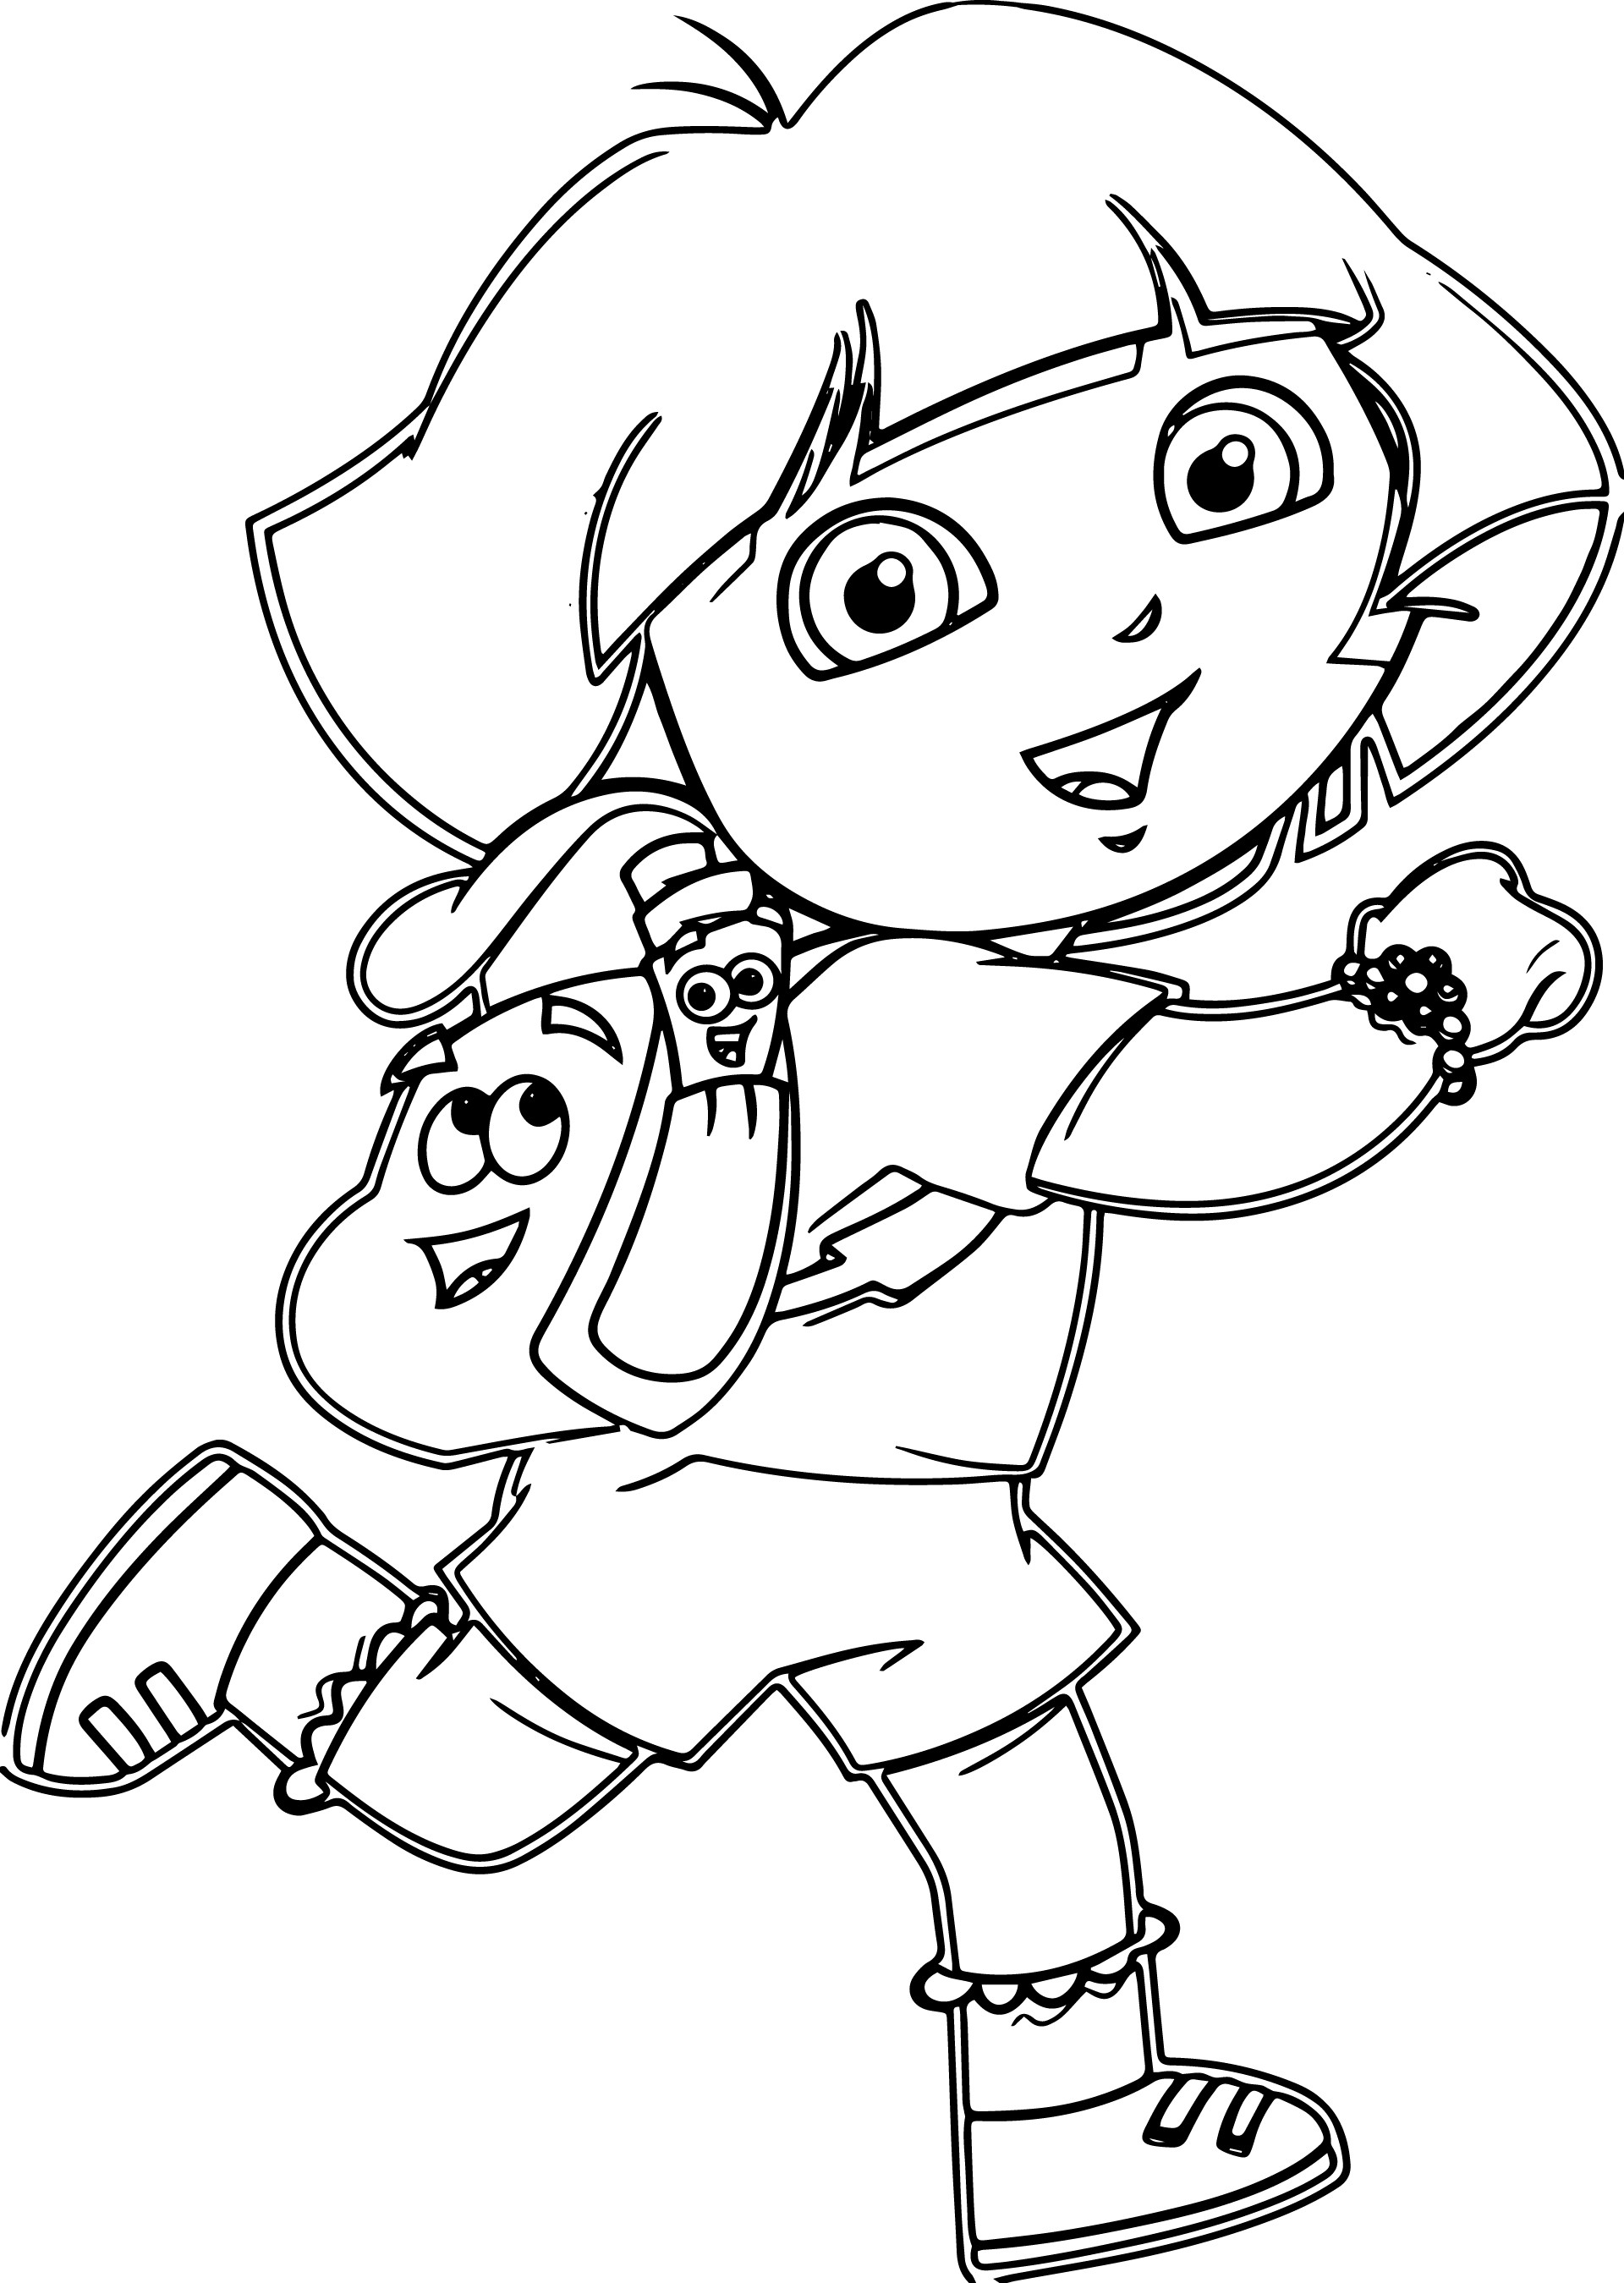 dora colouring pages craftsactvities and worksheets for preschooltoddler and pages dora colouring